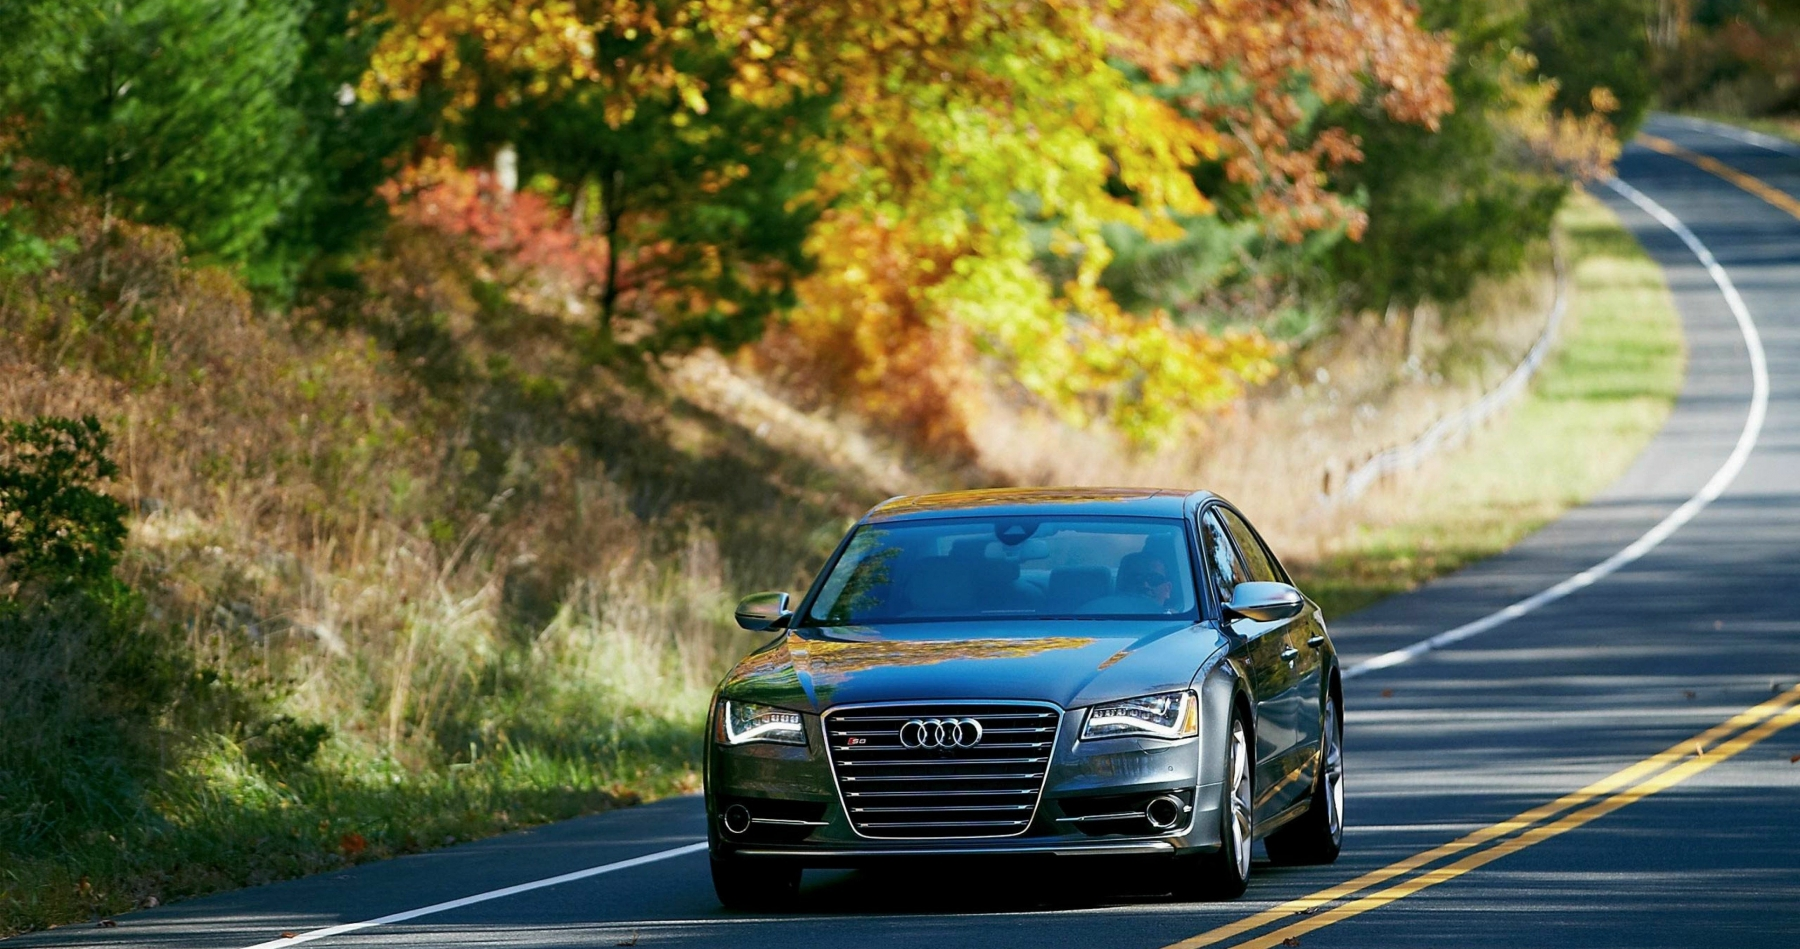 Audi S8 HD Wallpapers   Background Images   Photos ...